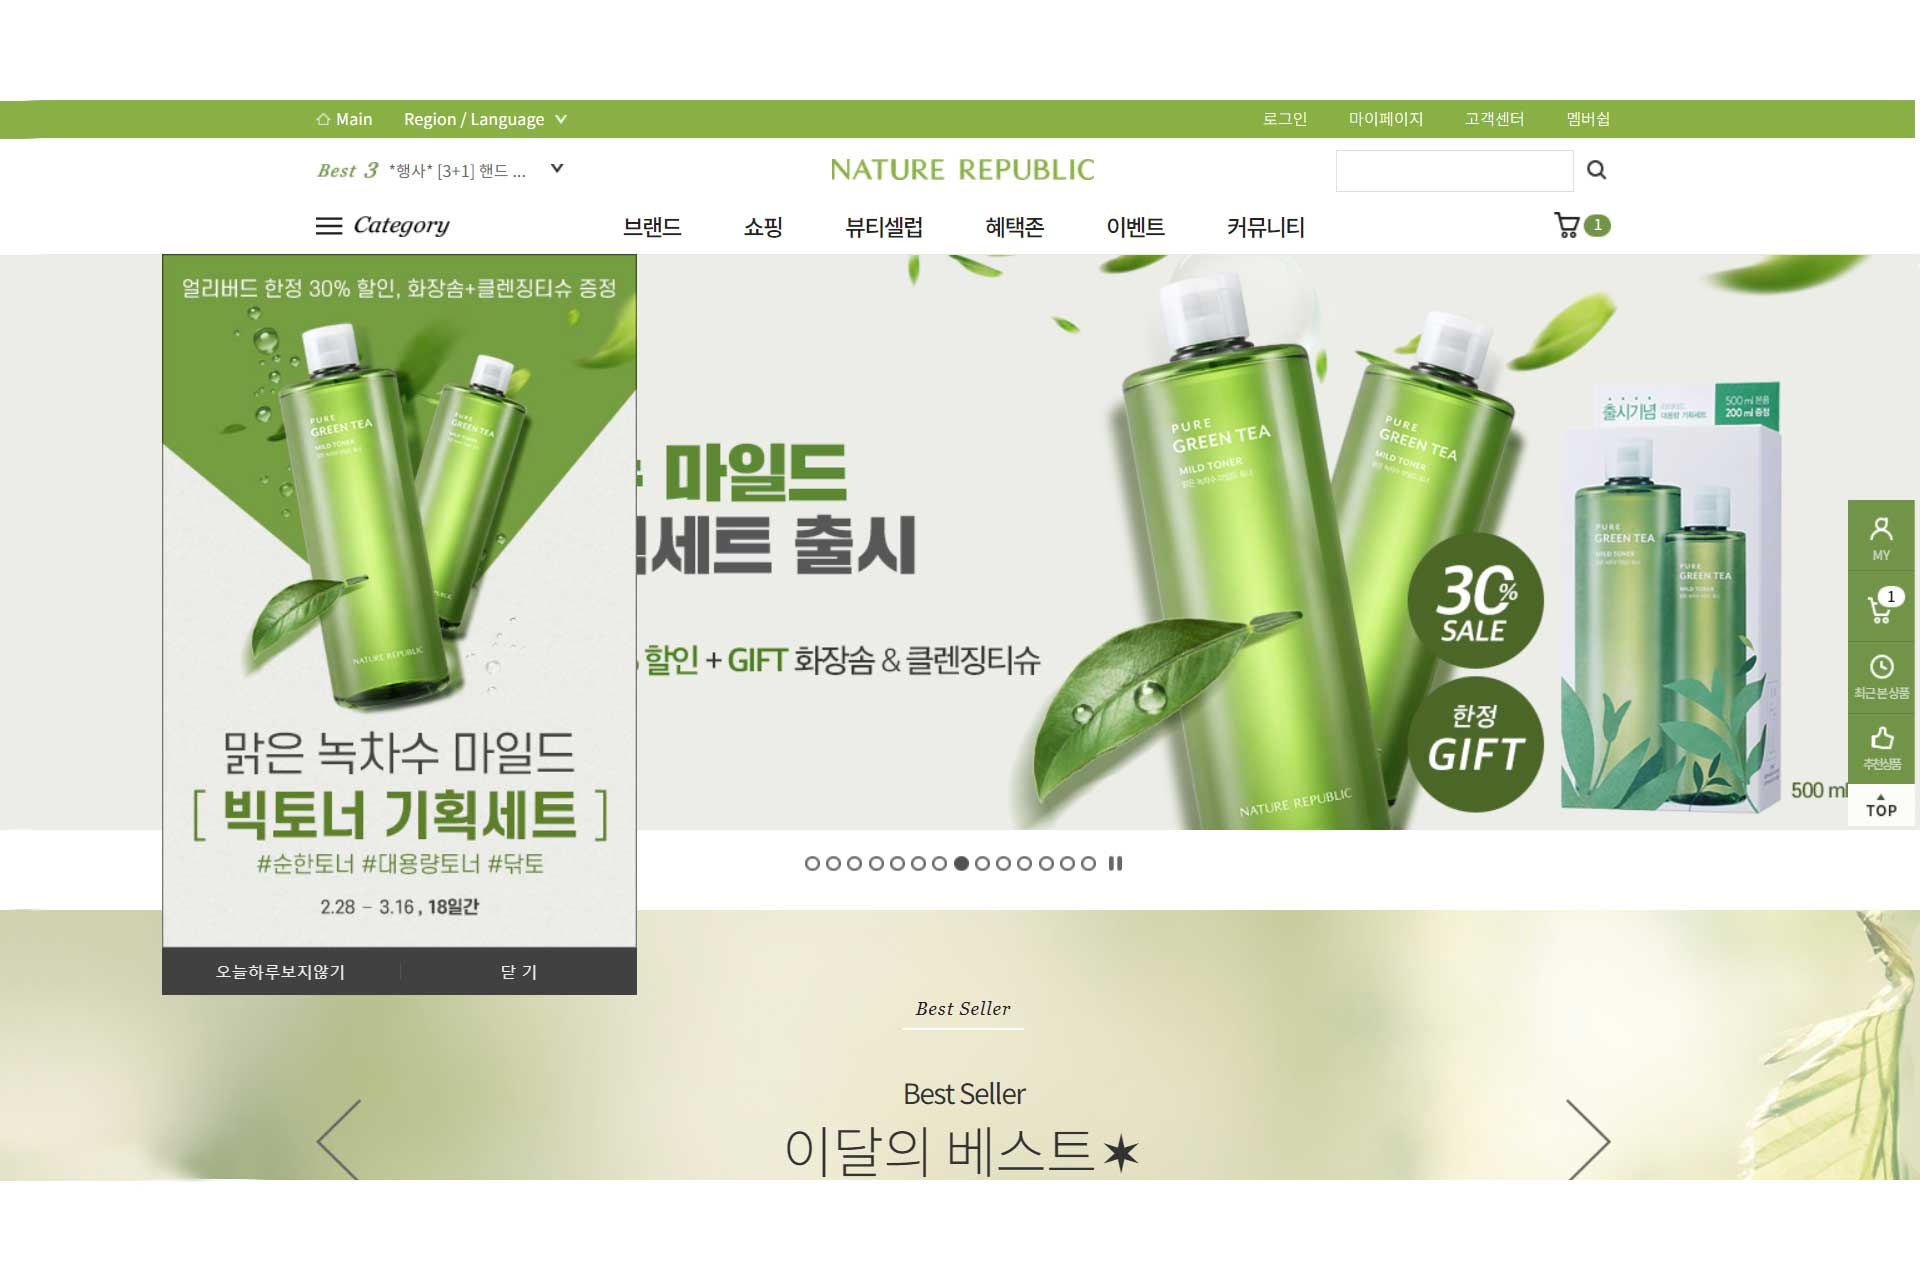 Read more about the article Guidelines for Online Shopping in South Korea: Nature Republic